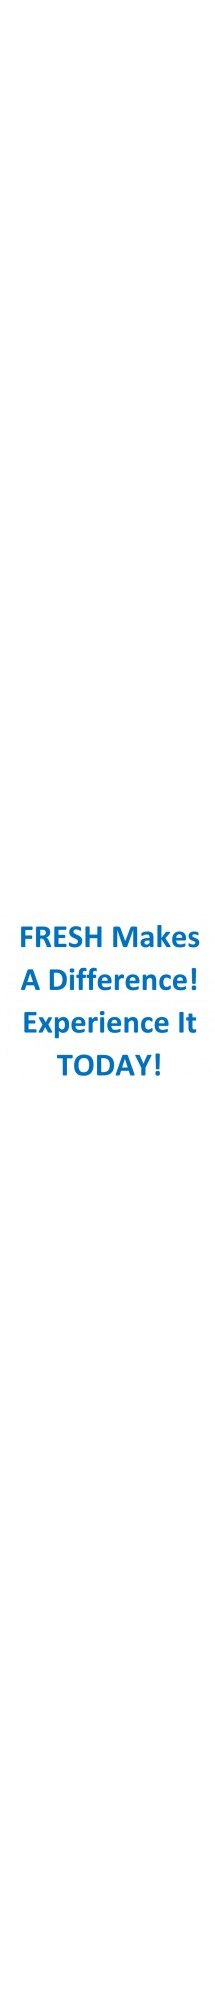 Fresh Makes a Difference Experience It Today